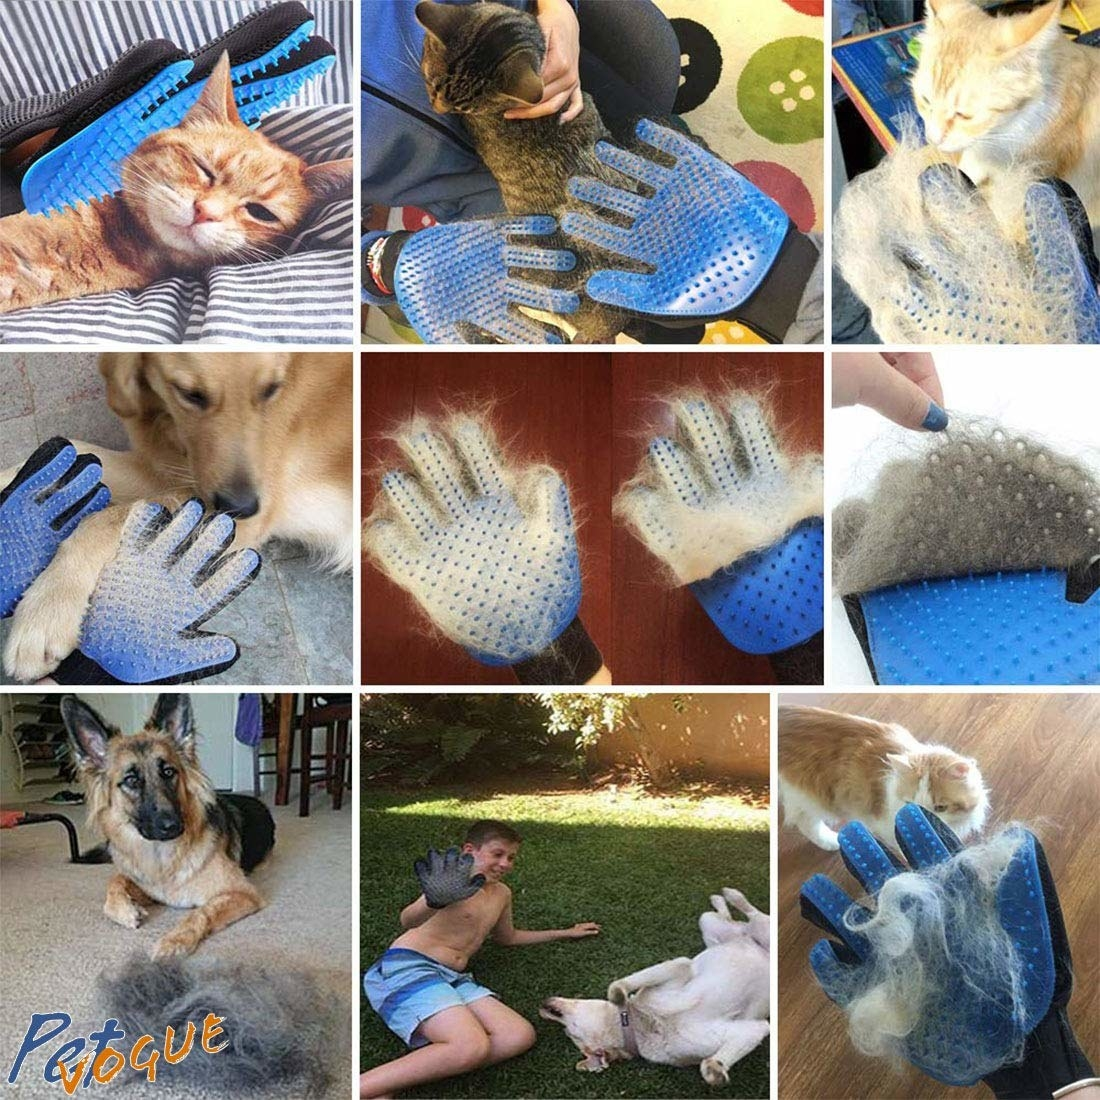 Numerous images show how a de-shedding grooming glove works on pets.